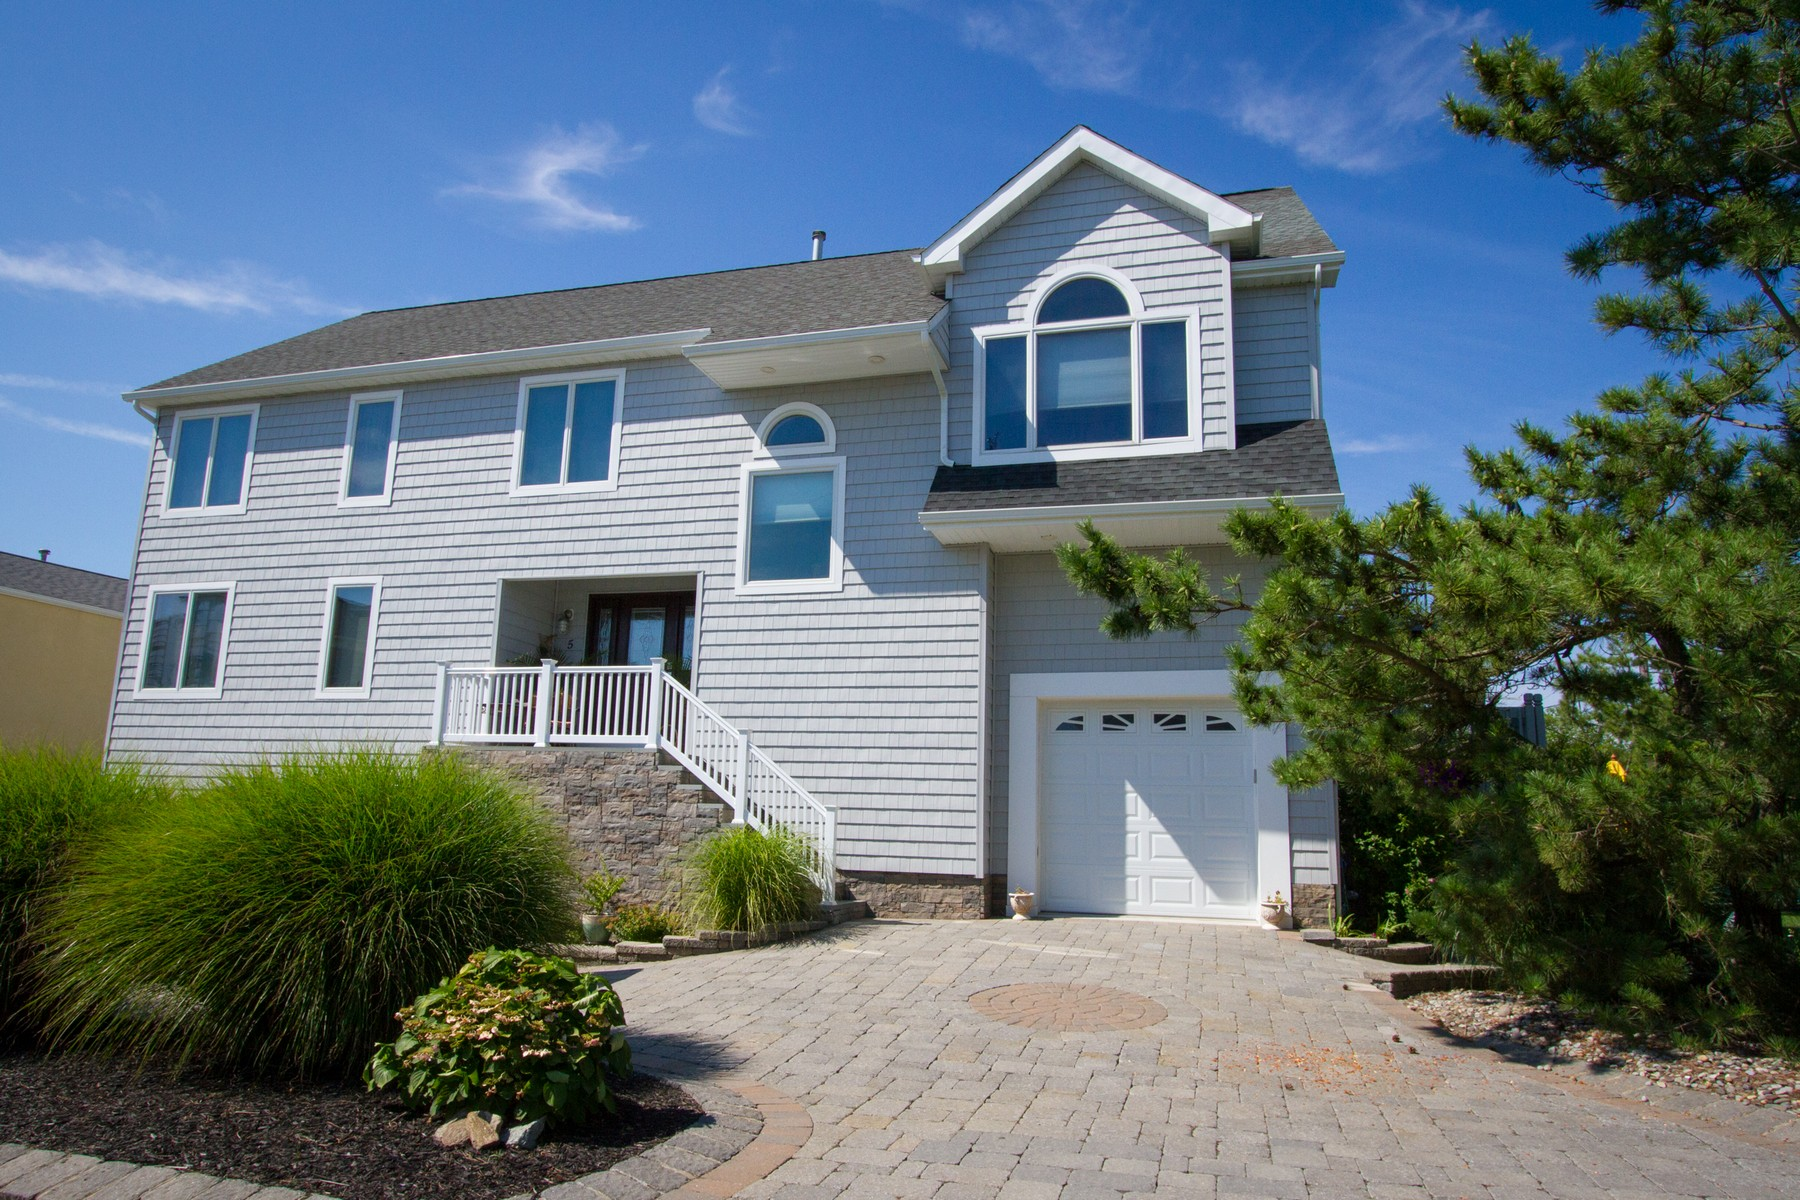 Single Family Home for Sale at Every home is a masterpiece 5 Sunset Lane Monmouth Beach, New Jersey, 07750 United States